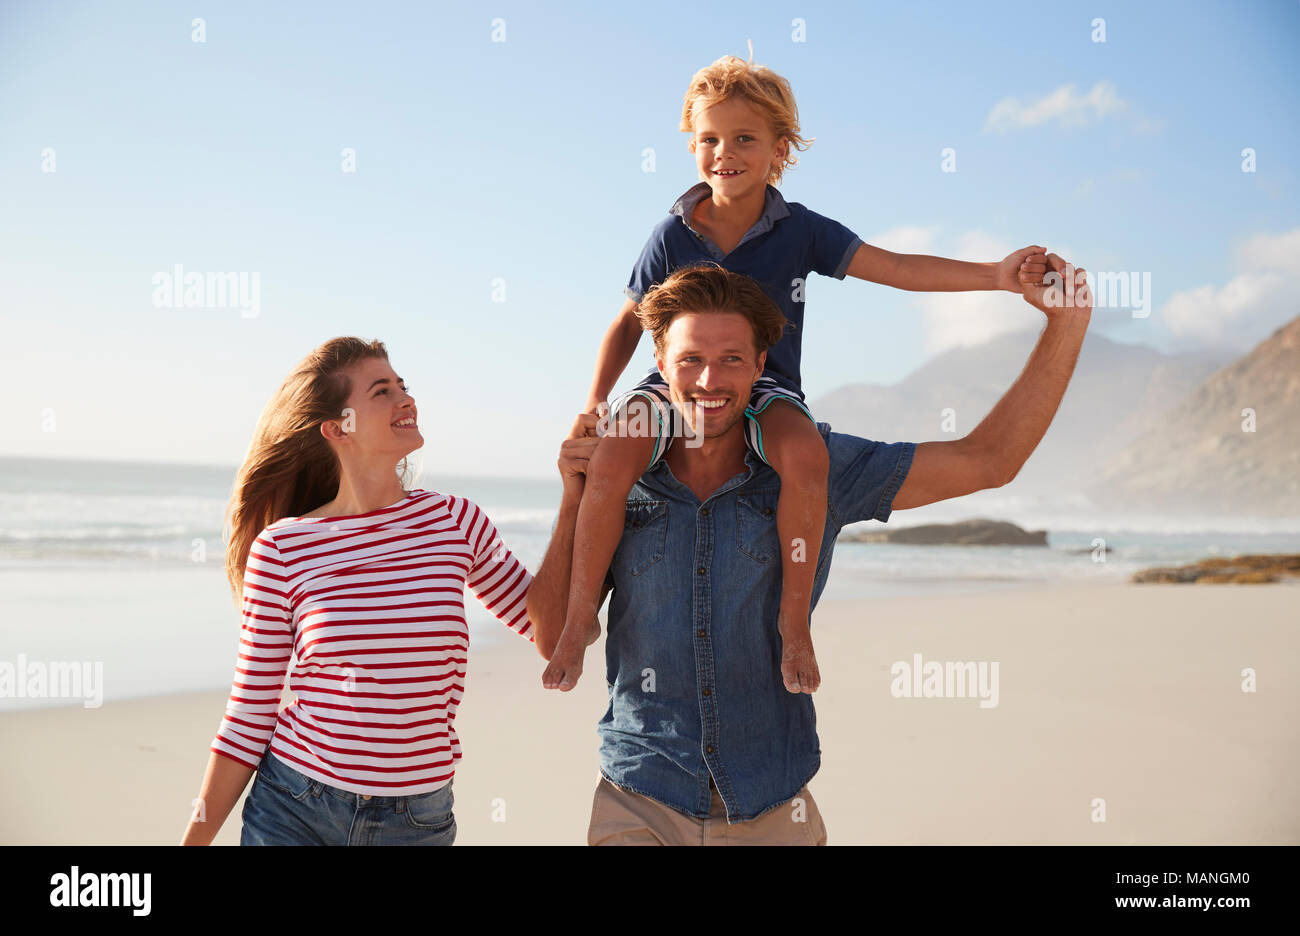 Portrait Of Parents Carrying Son On Shoulders On Beach Vacation - Stock Image